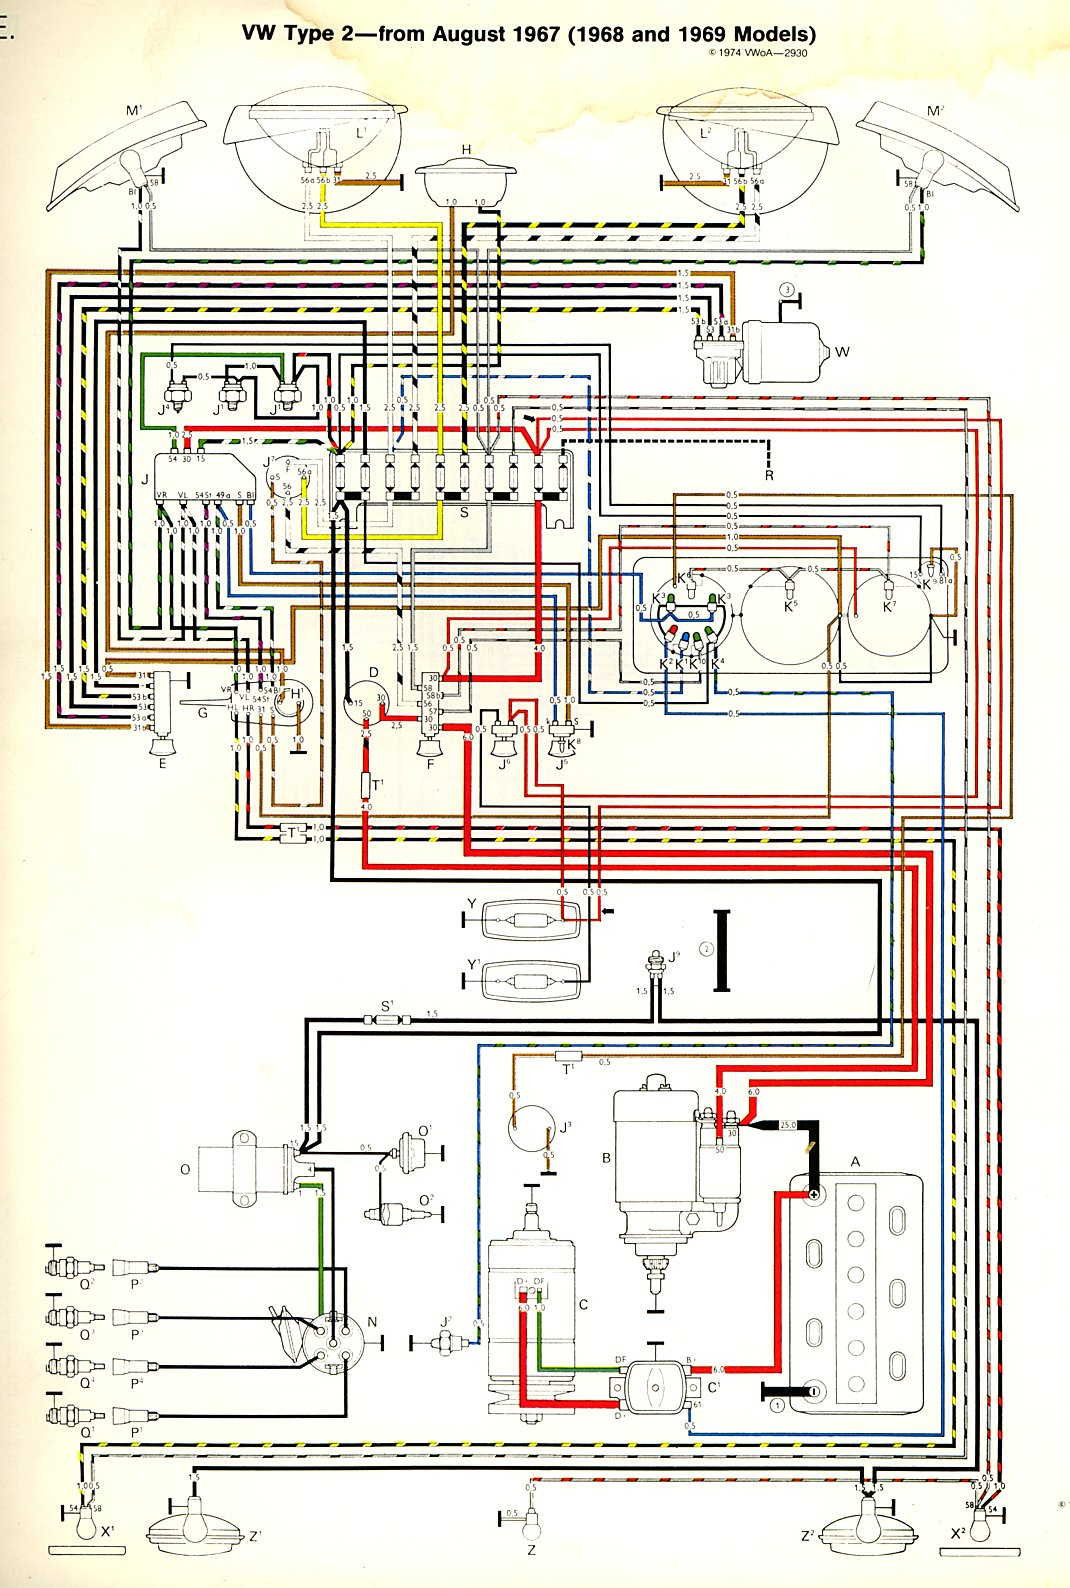 baybus_6869a bus wiring diagram vw wiring harness diagram \u2022 wiring diagrams j vw type 3 wiring harness at alyssarenee.co